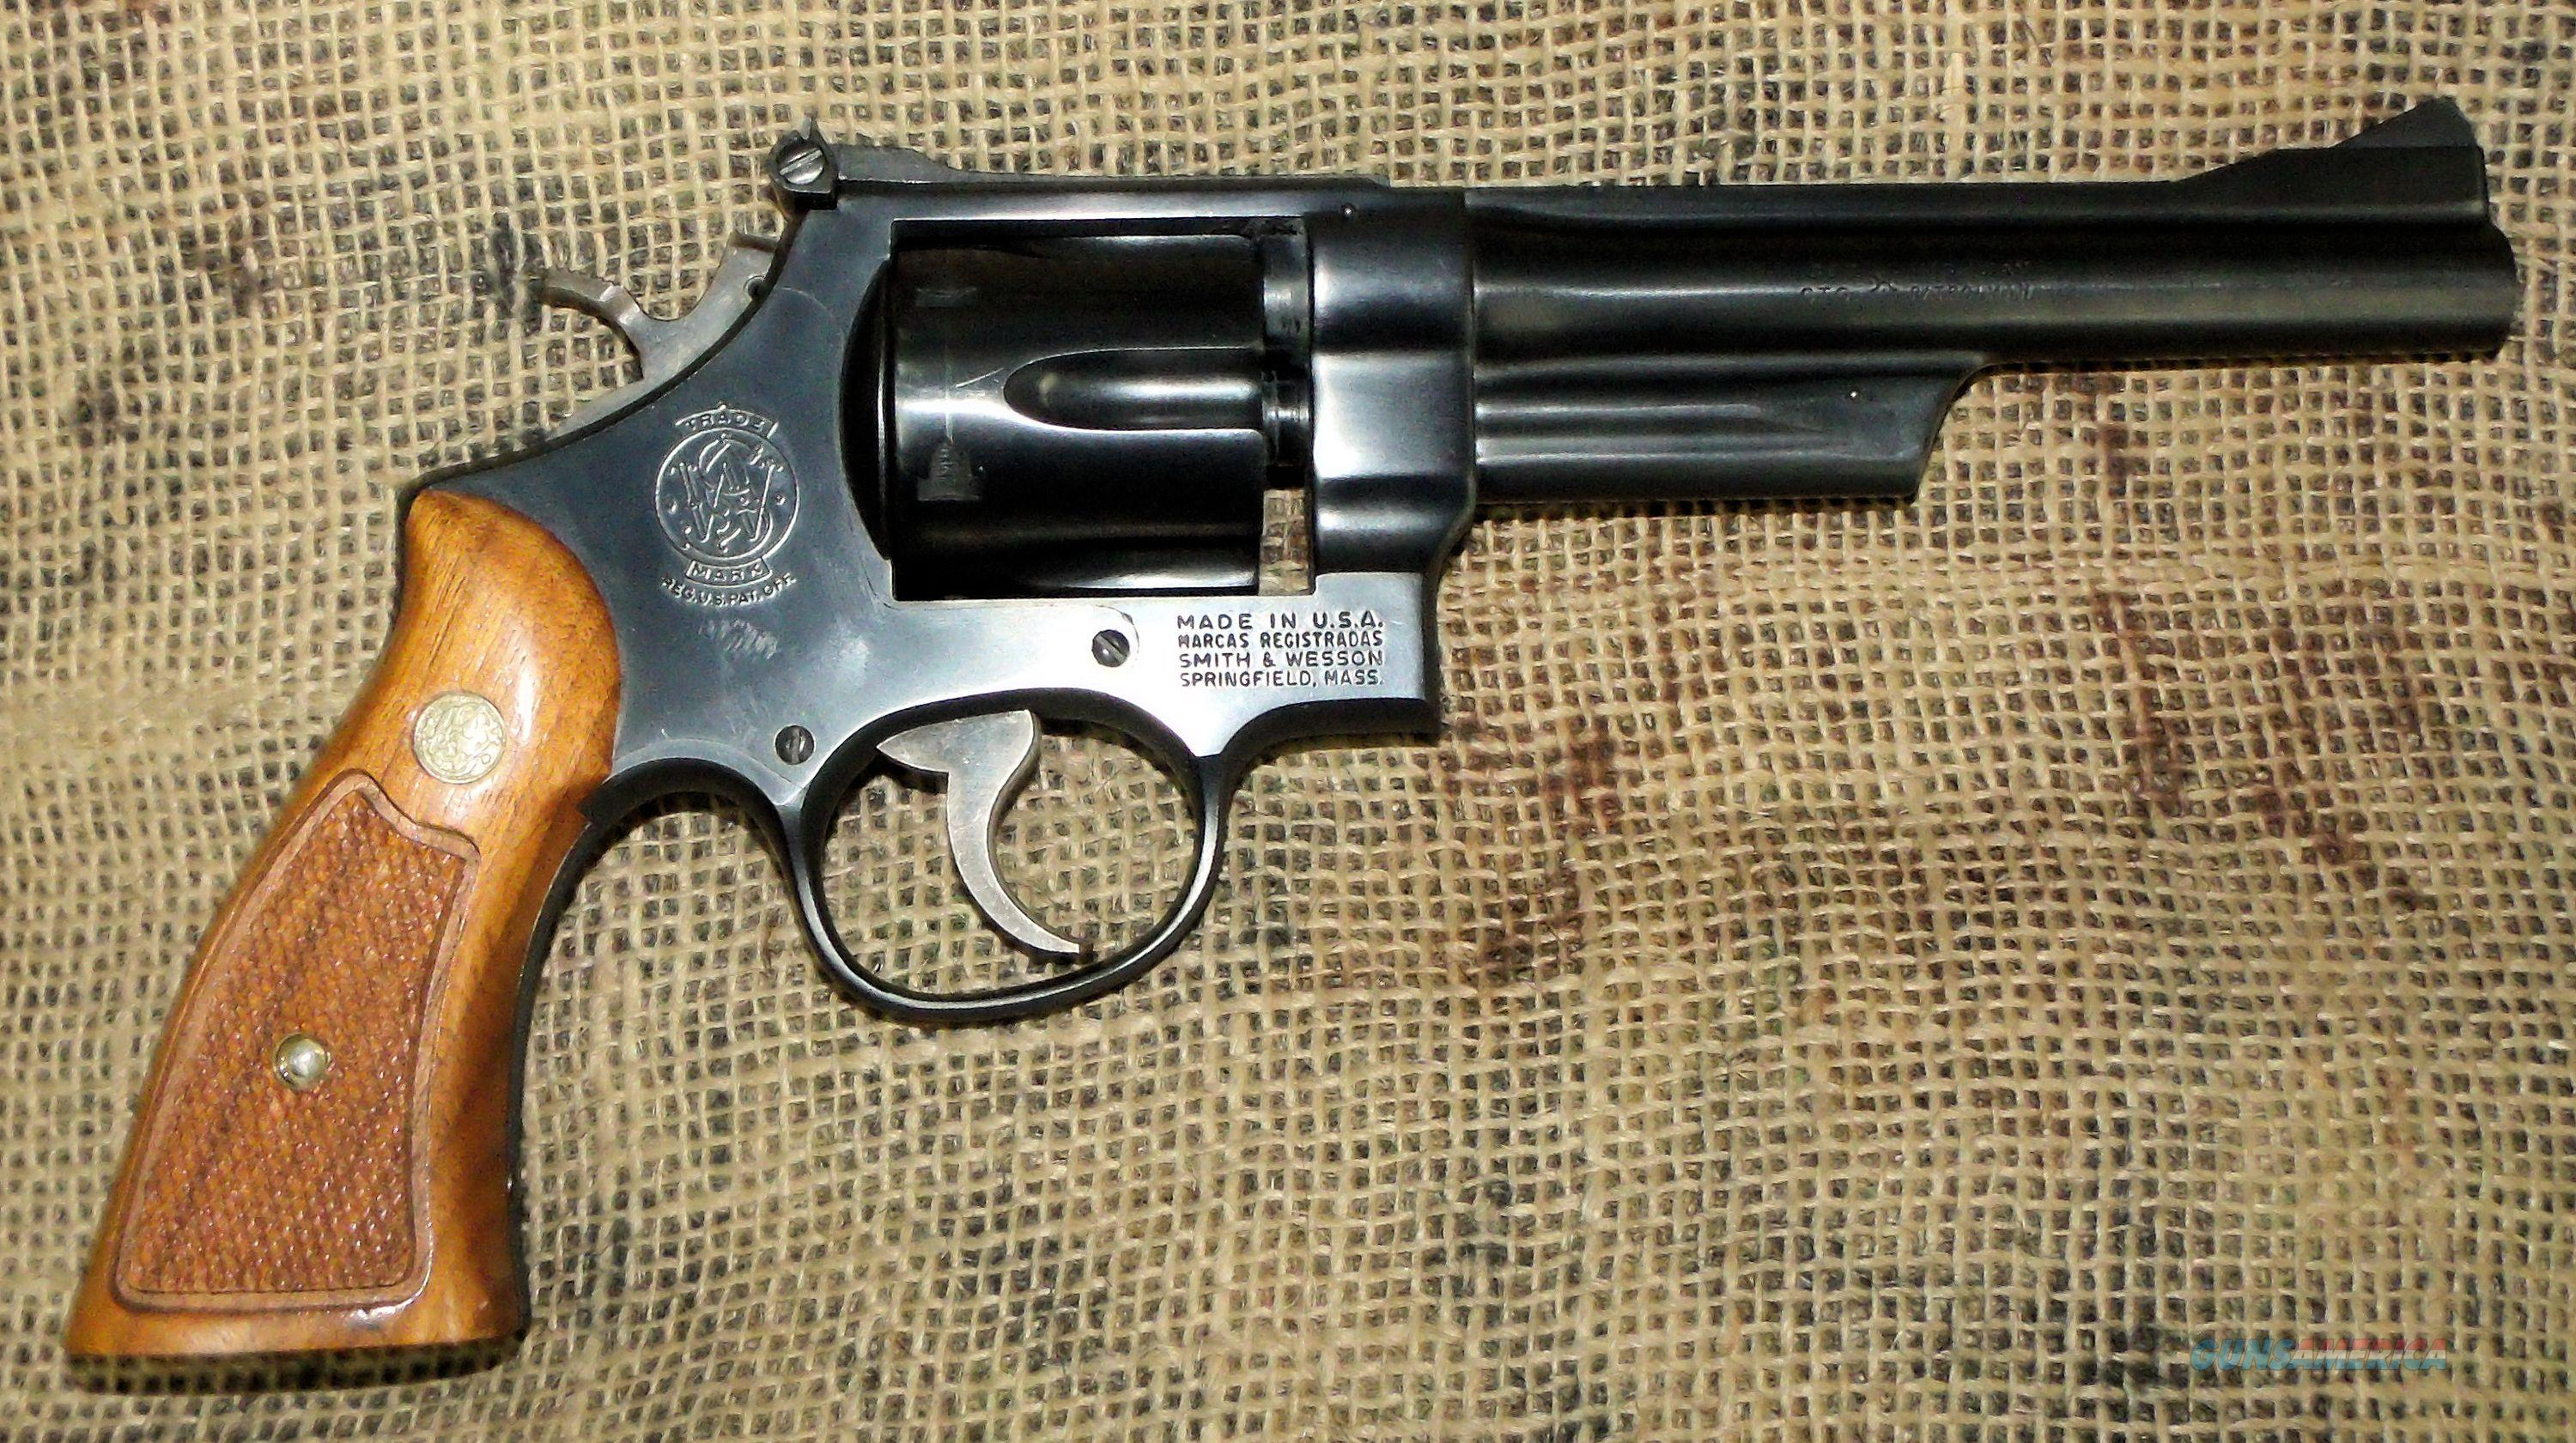 SMITH & WESSON Mod. 28-2, 357 Mag. Rev.  Guns > Pistols > Smith & Wesson Revolvers > Full Frame Revolver